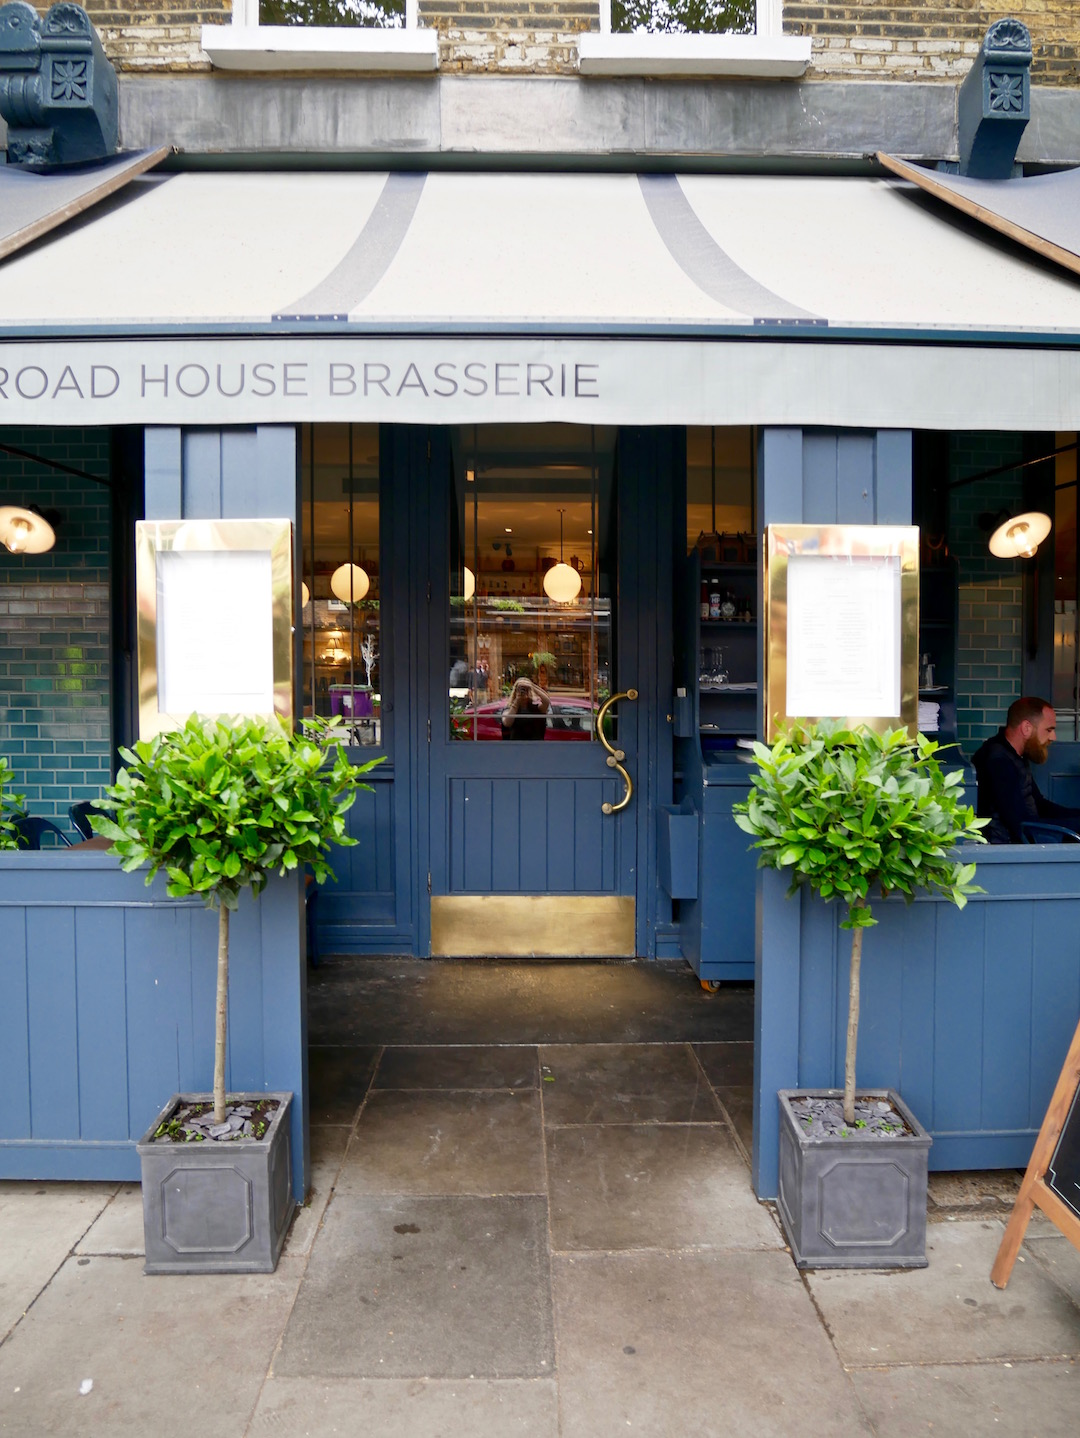 The High Road Brasserie, Chiswick